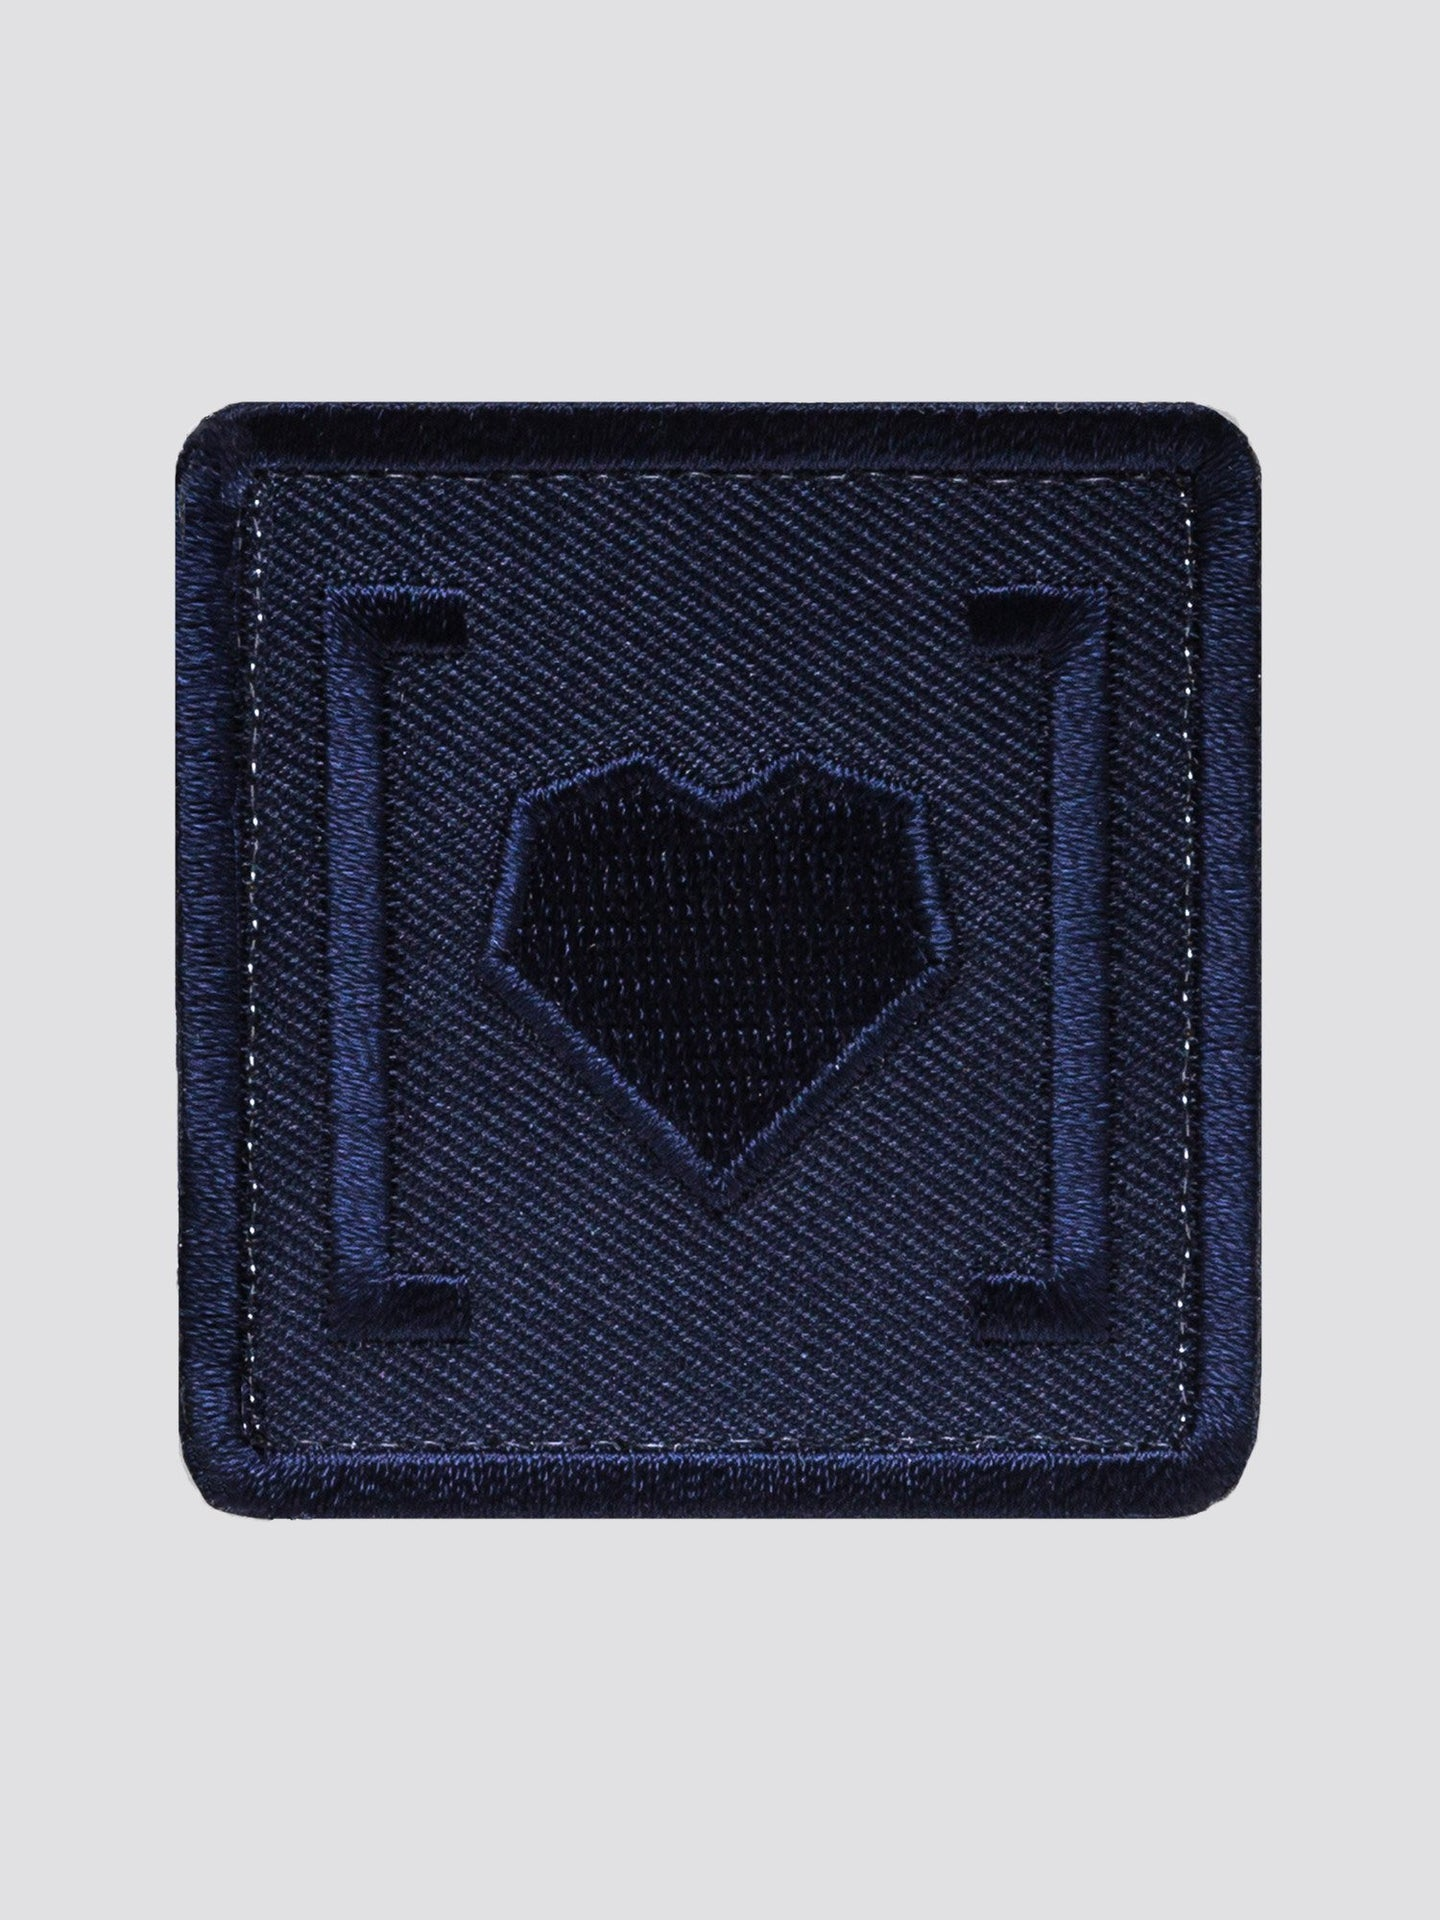 HAS HEART LARGE ICON PATCH ACCESSORY Alpha Industries NAVY O/S